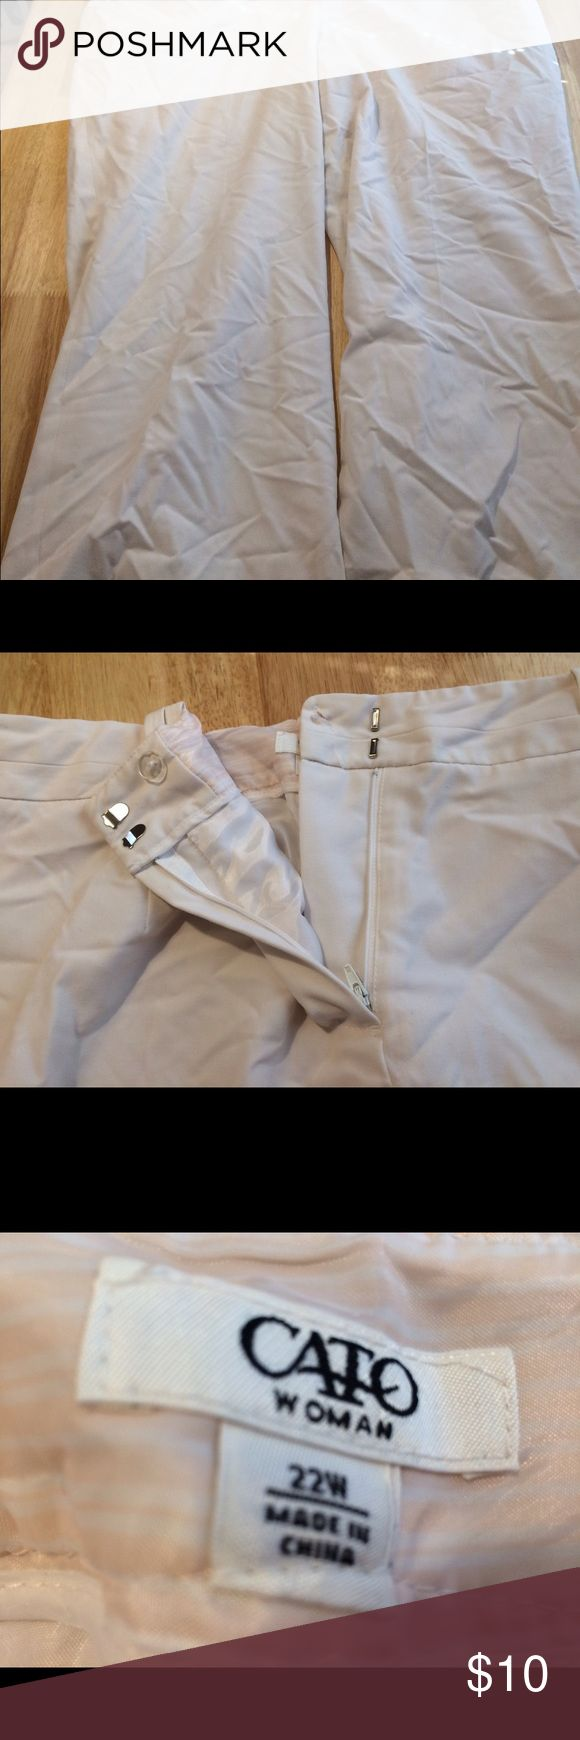 Gently used Cato Size 22W Dressy White Slacks Dressy white slacks good for any occasion. Slacks are in great shape but the lining is tore on the inside. You can't tell when you wear them. Gorgeous pants! Cato Pants Straight Leg